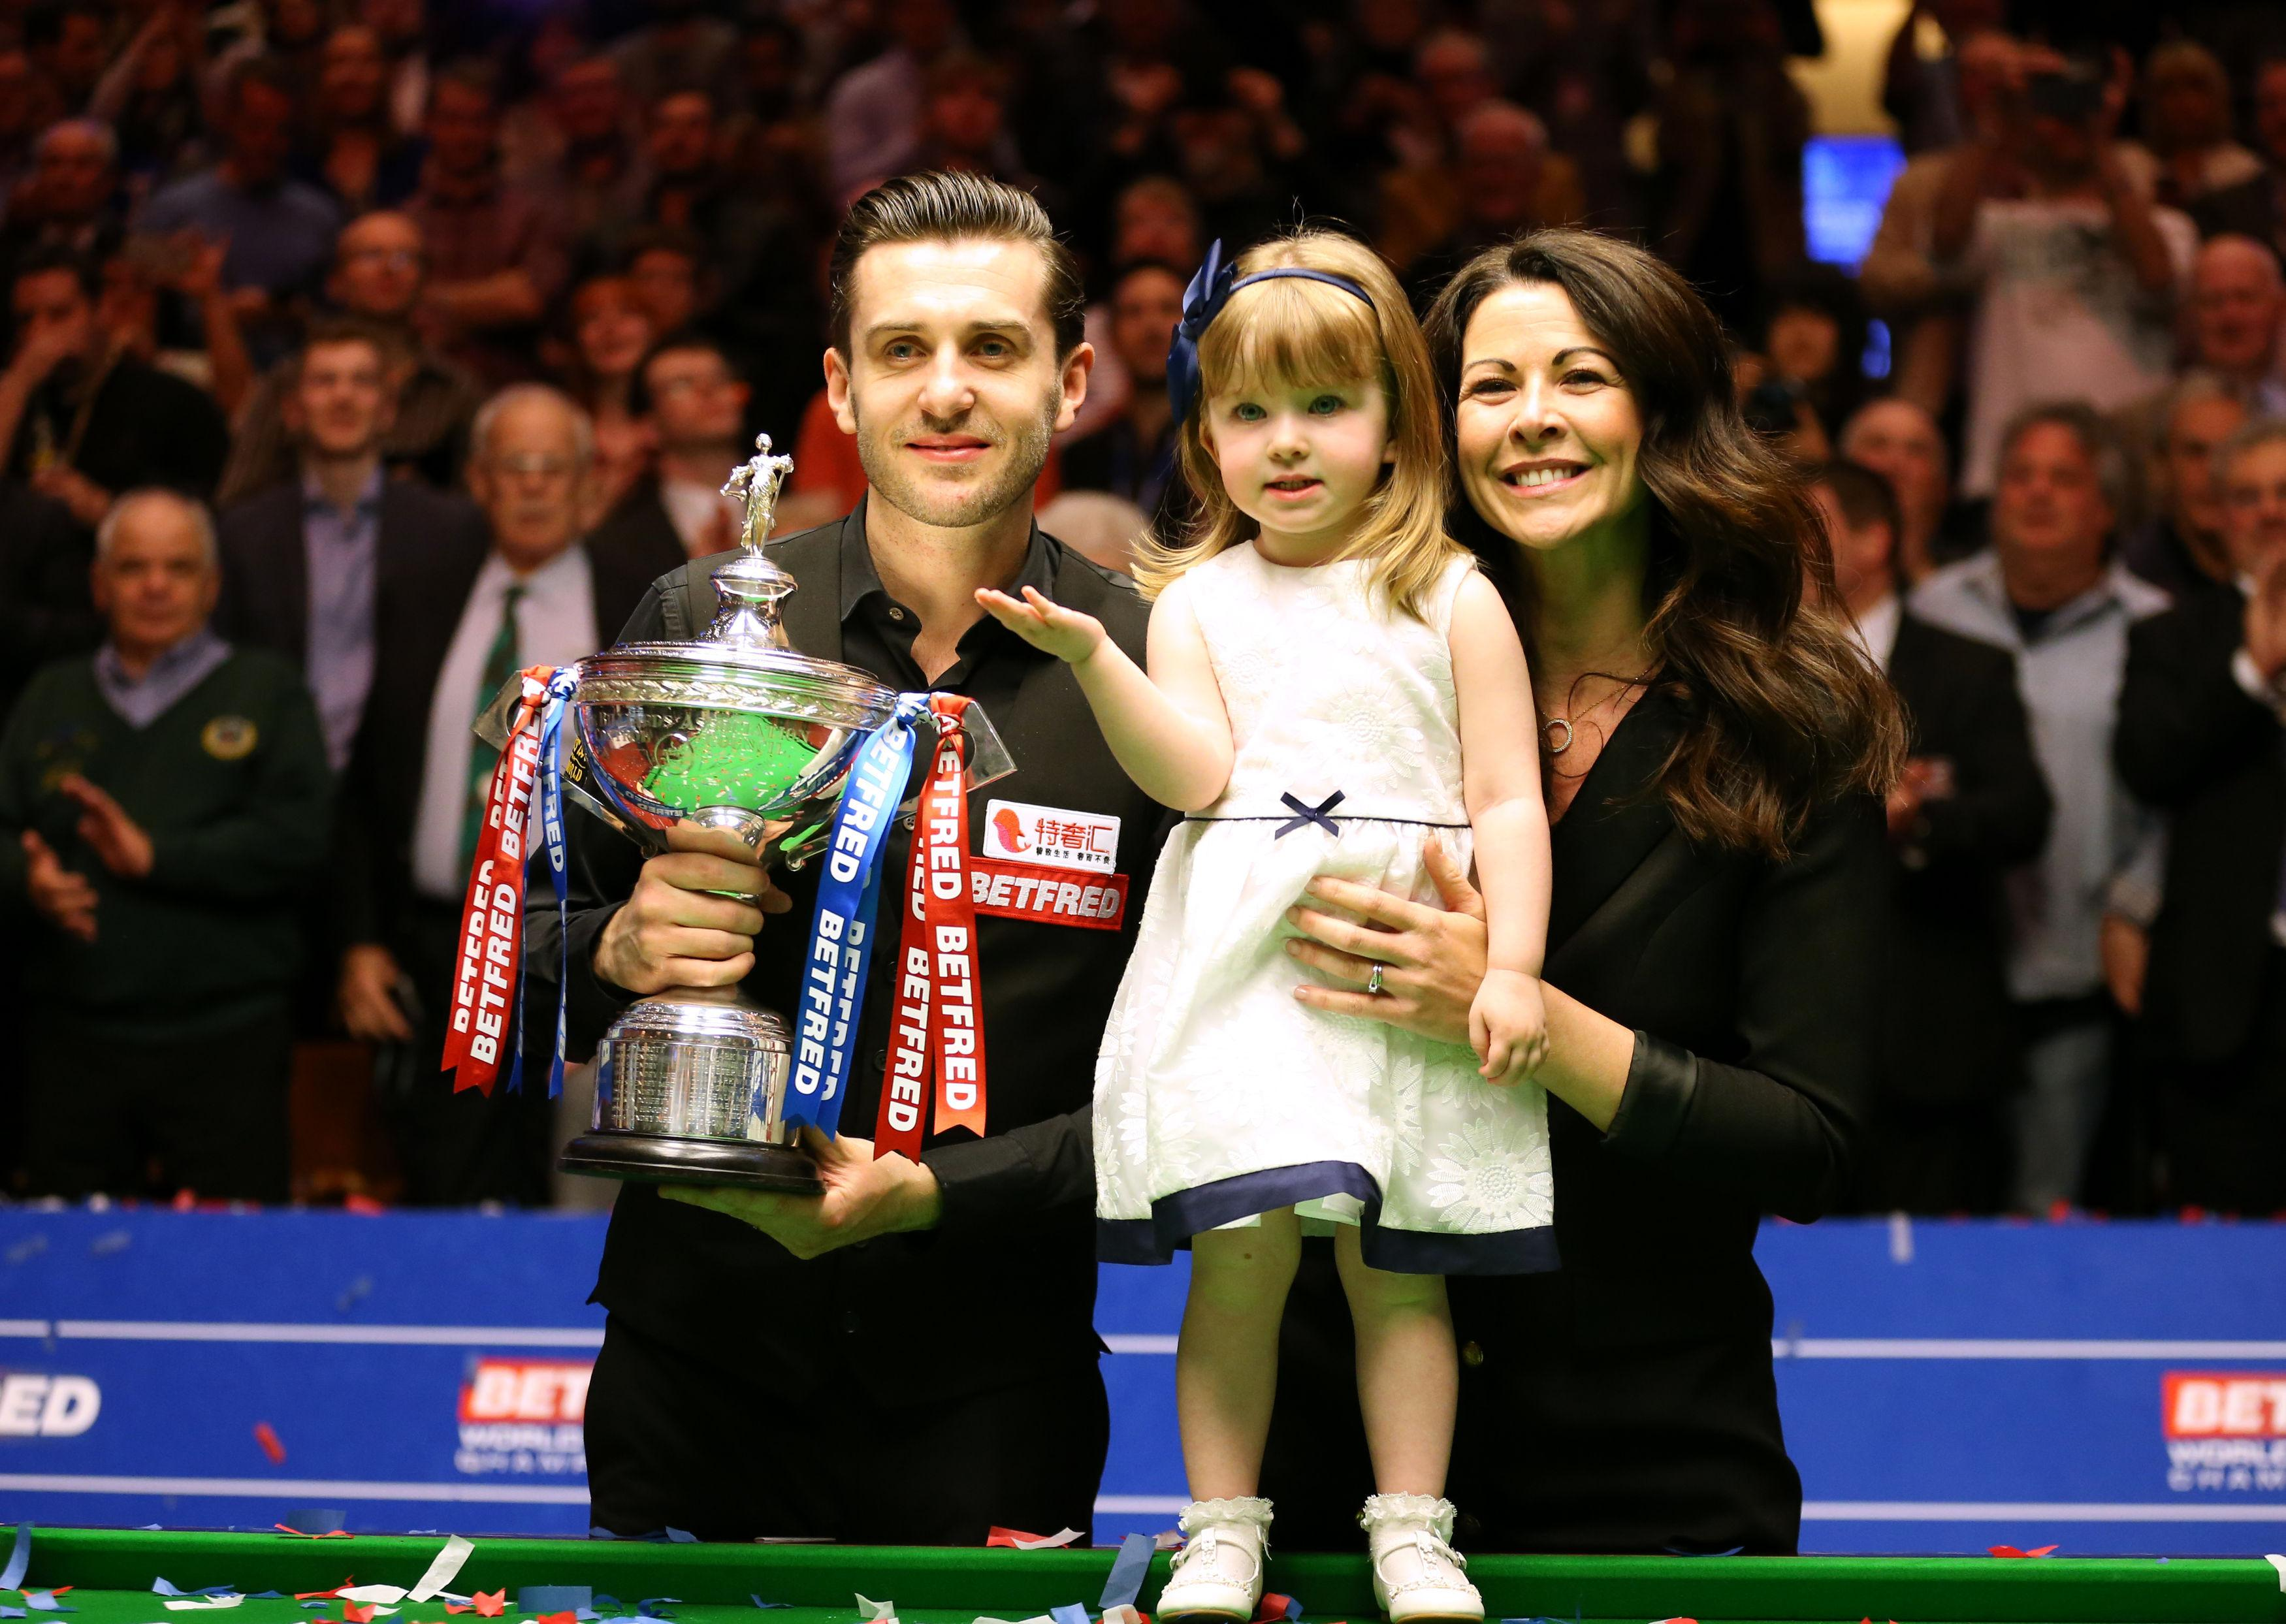 Mark Selby won the tournament in 2016 and 2017